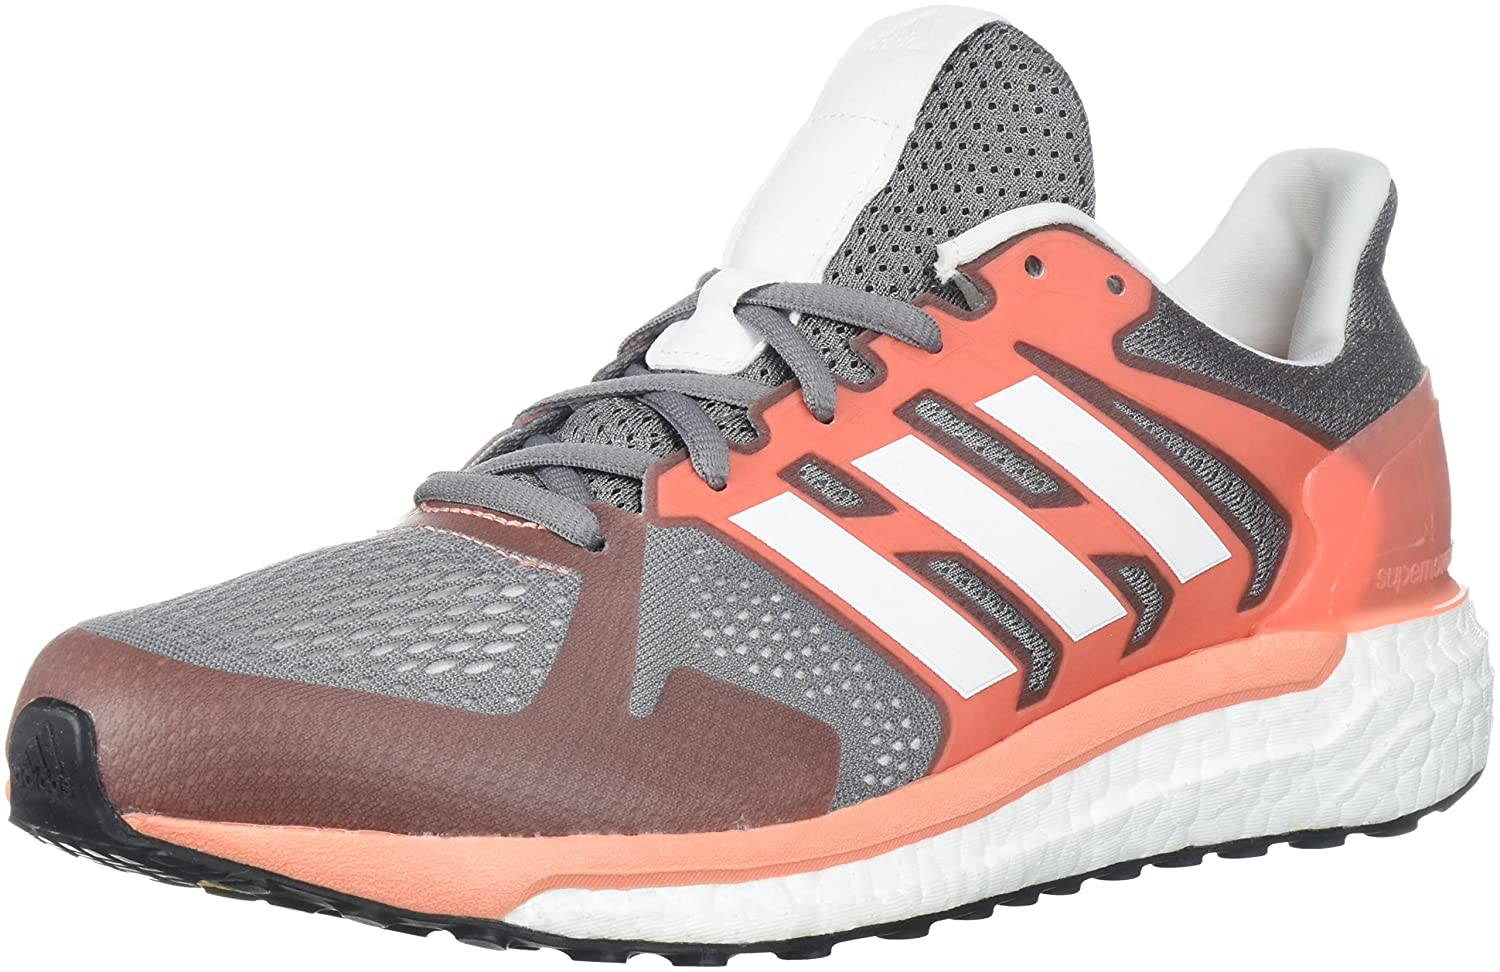 adidas Women's Supernova St W Running Shoe B072FH7HVM 7 B(M) US|Grey Three/White/Chalk Coral